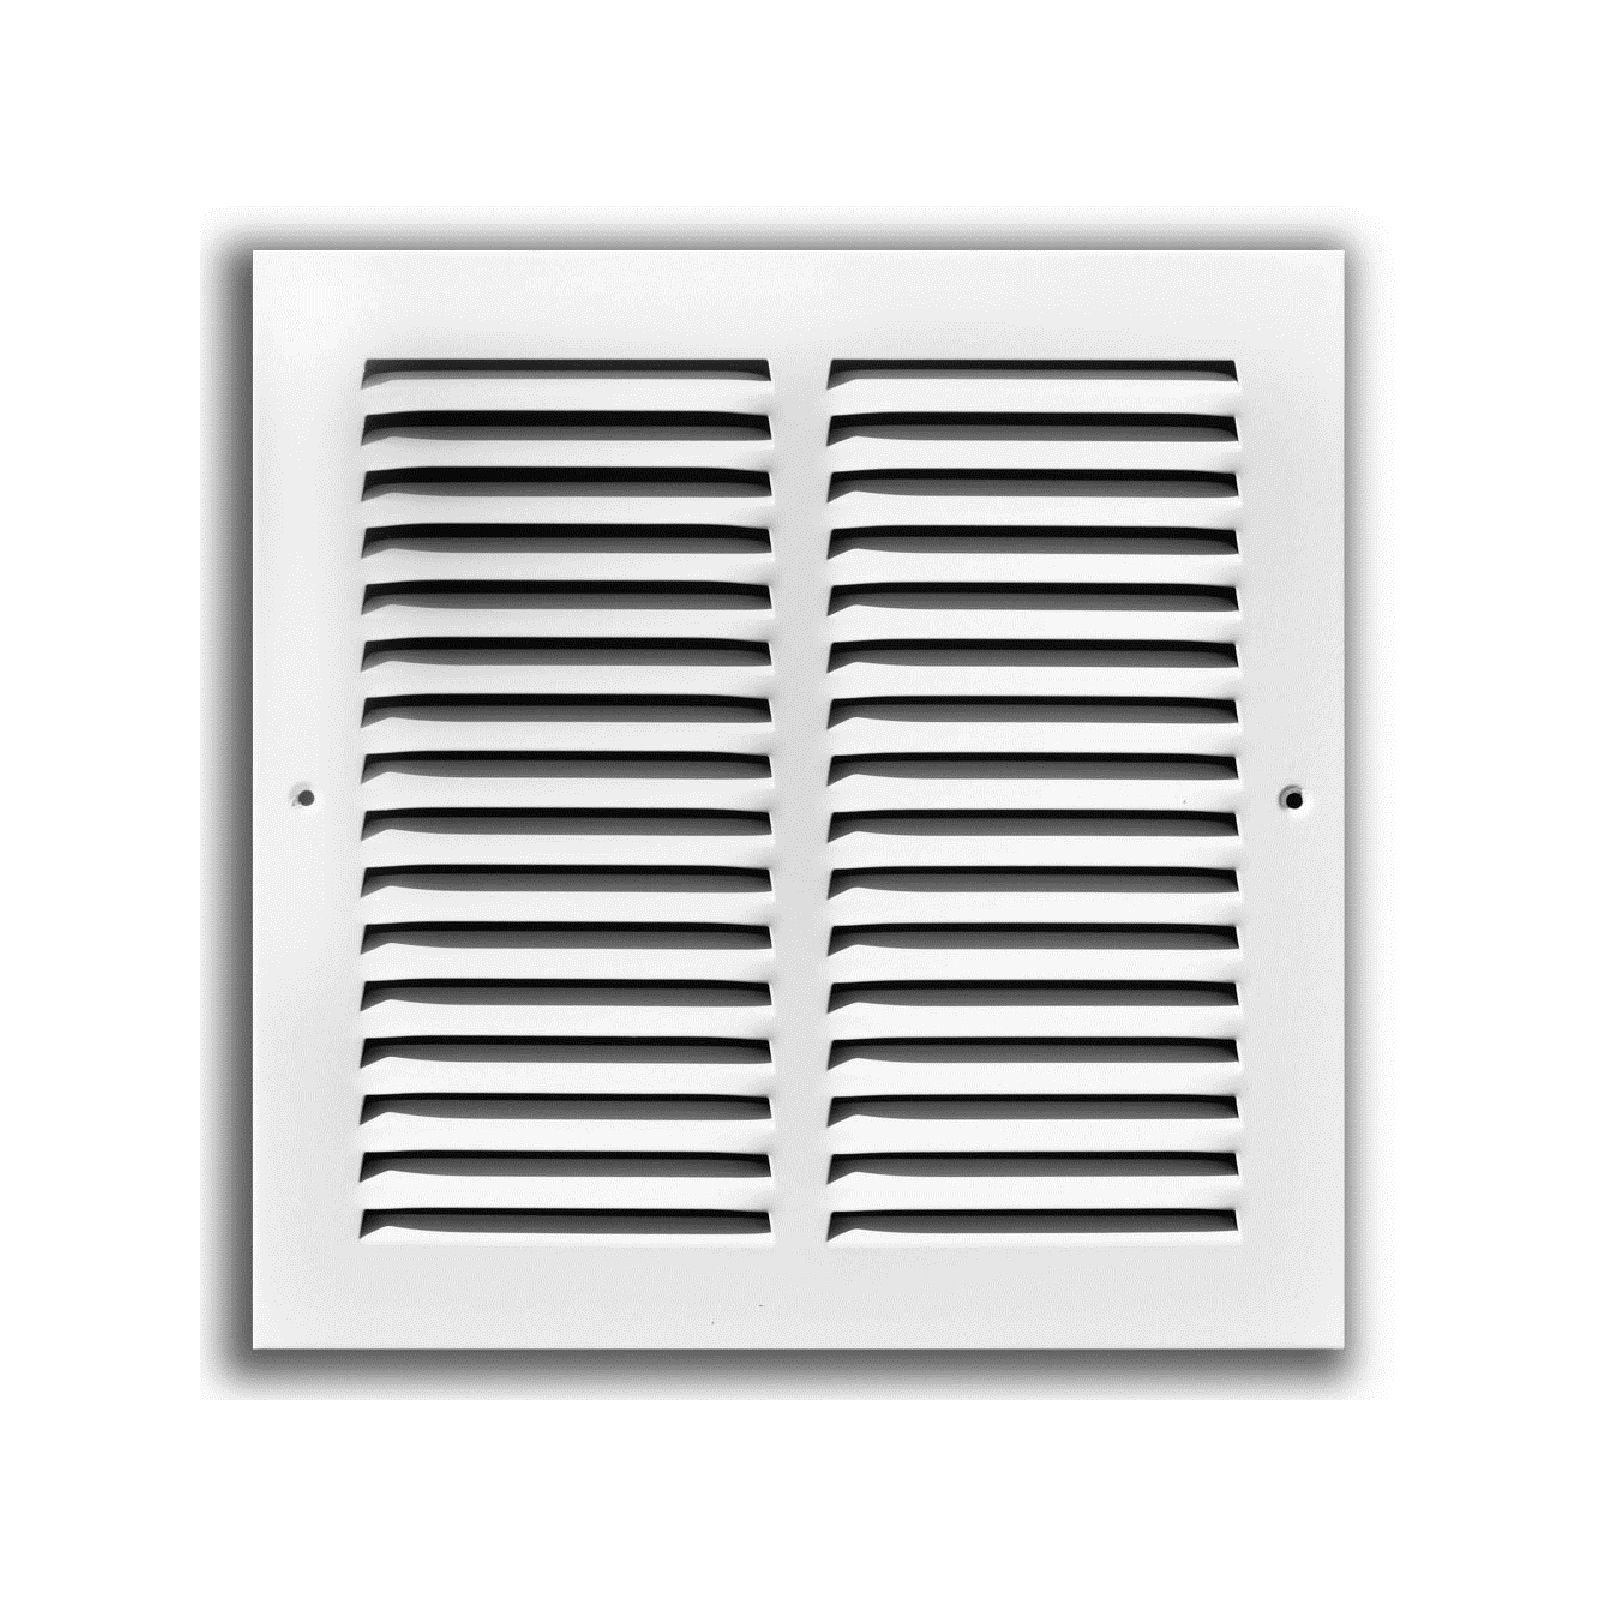 "TRUaire 170 16X24 - Steel Return Air Grille - 1/2"" Spaced Fin, White, 16"" X 24"""